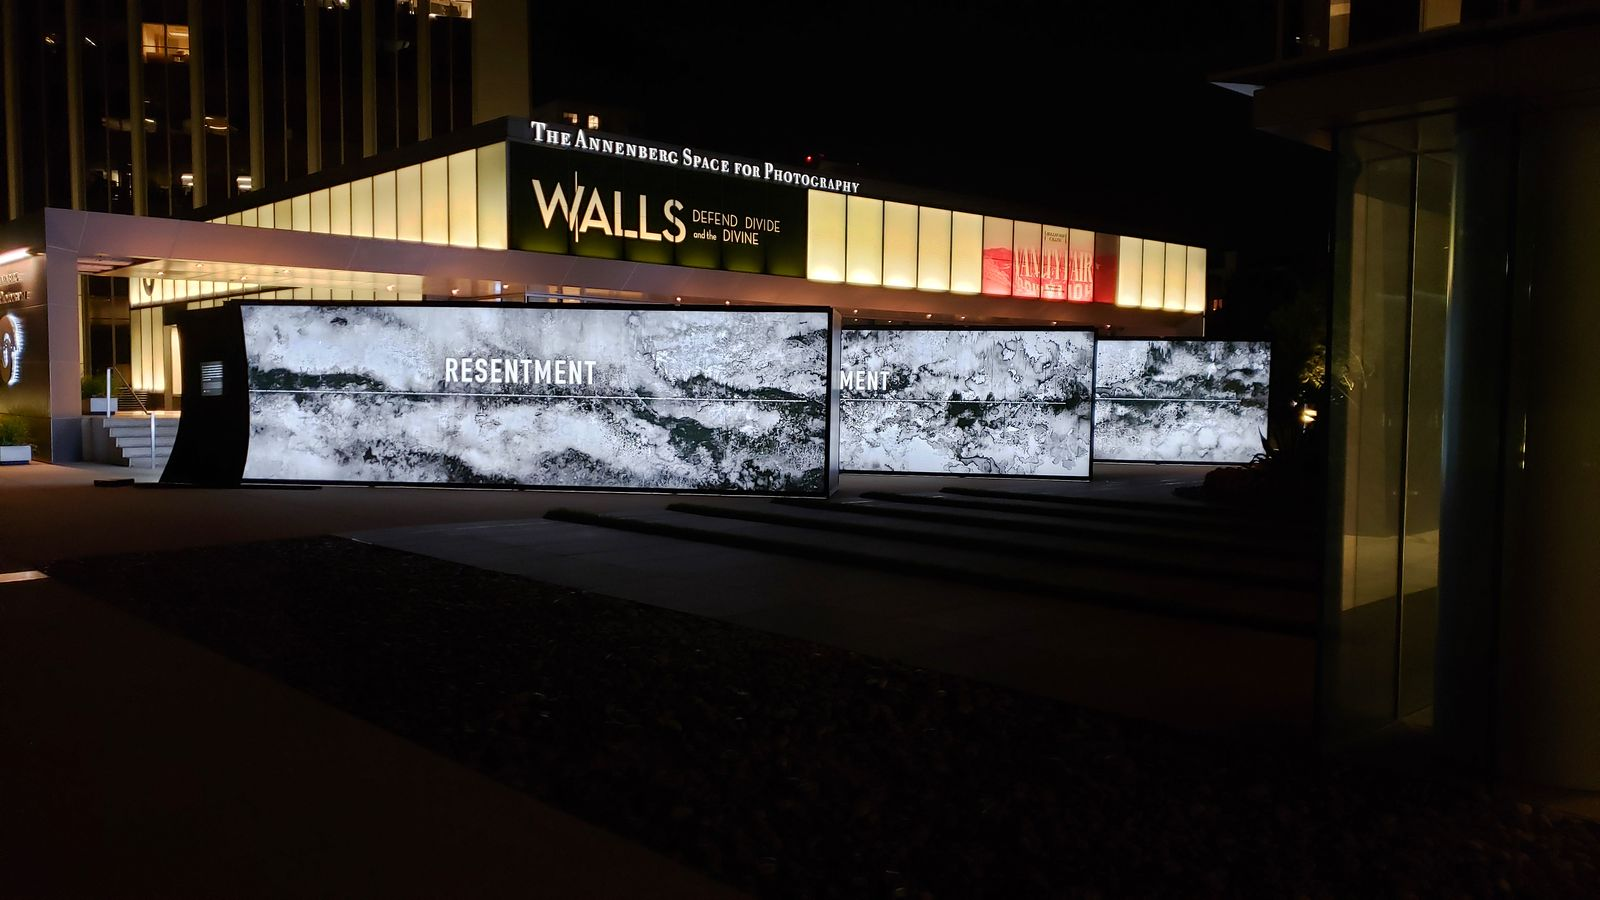 Annenberg large light boxes displaying black and white graphics made of aluminum and acrylic for exhibition event branding